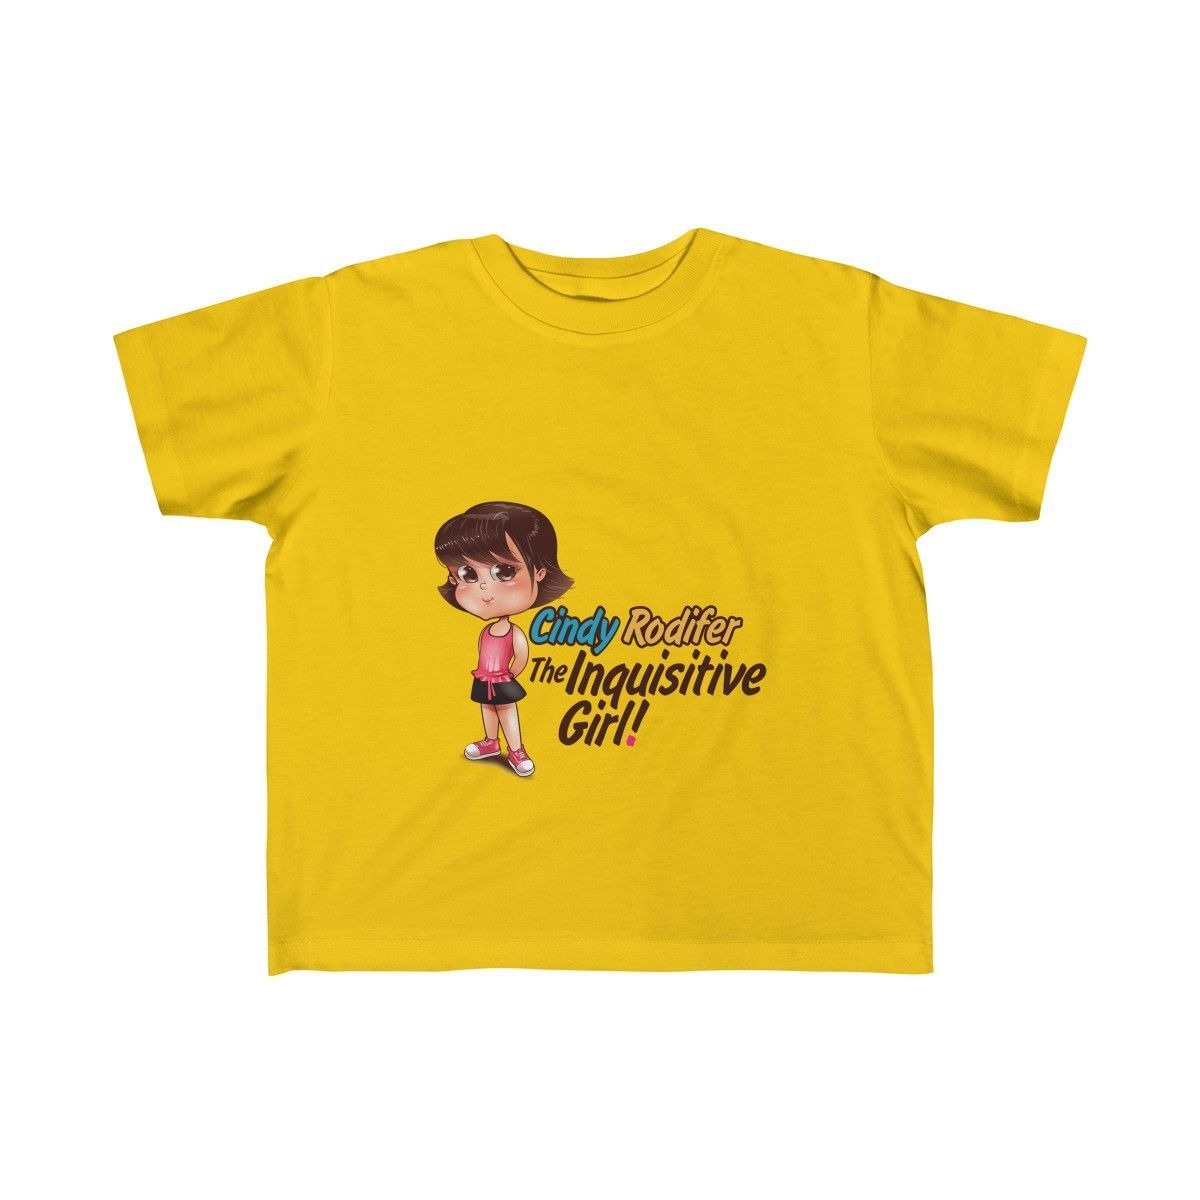 Cindy Rodifer: The Inquisitive Girl! Rabbitskins 3321 Toddler Fine Jersey Tee (Ages 2-6)